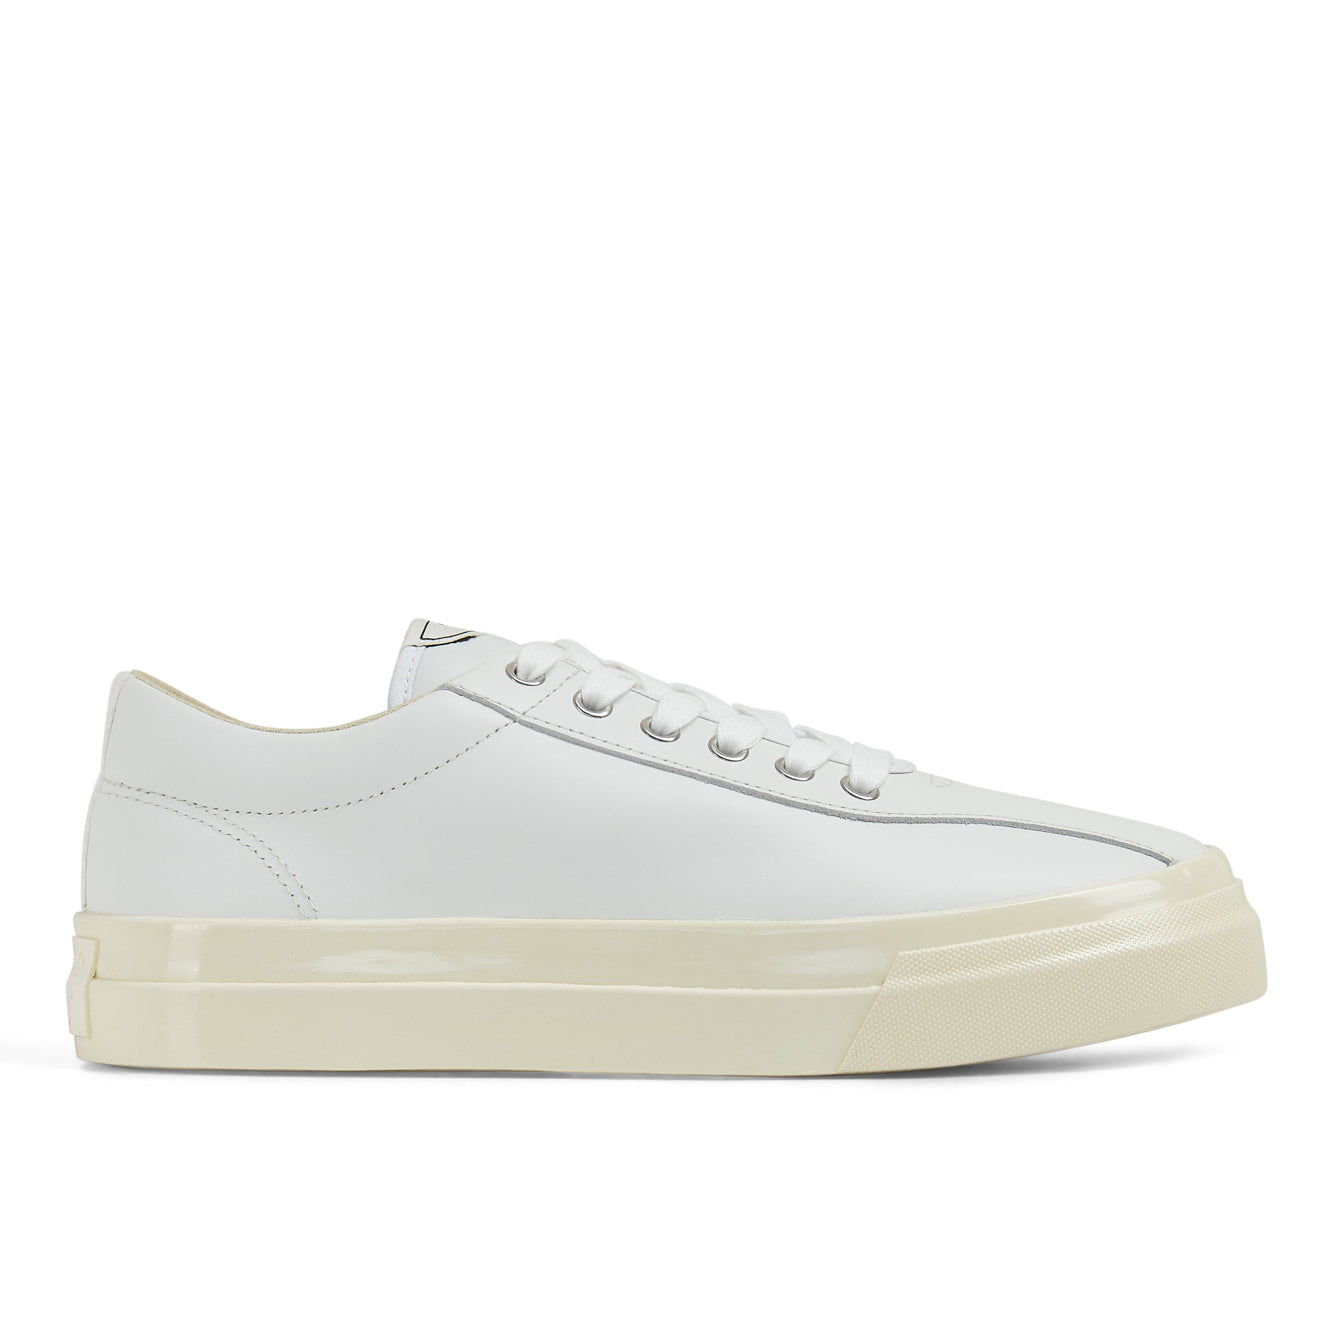 stepney workers club swc footwear shoes dellow leather white